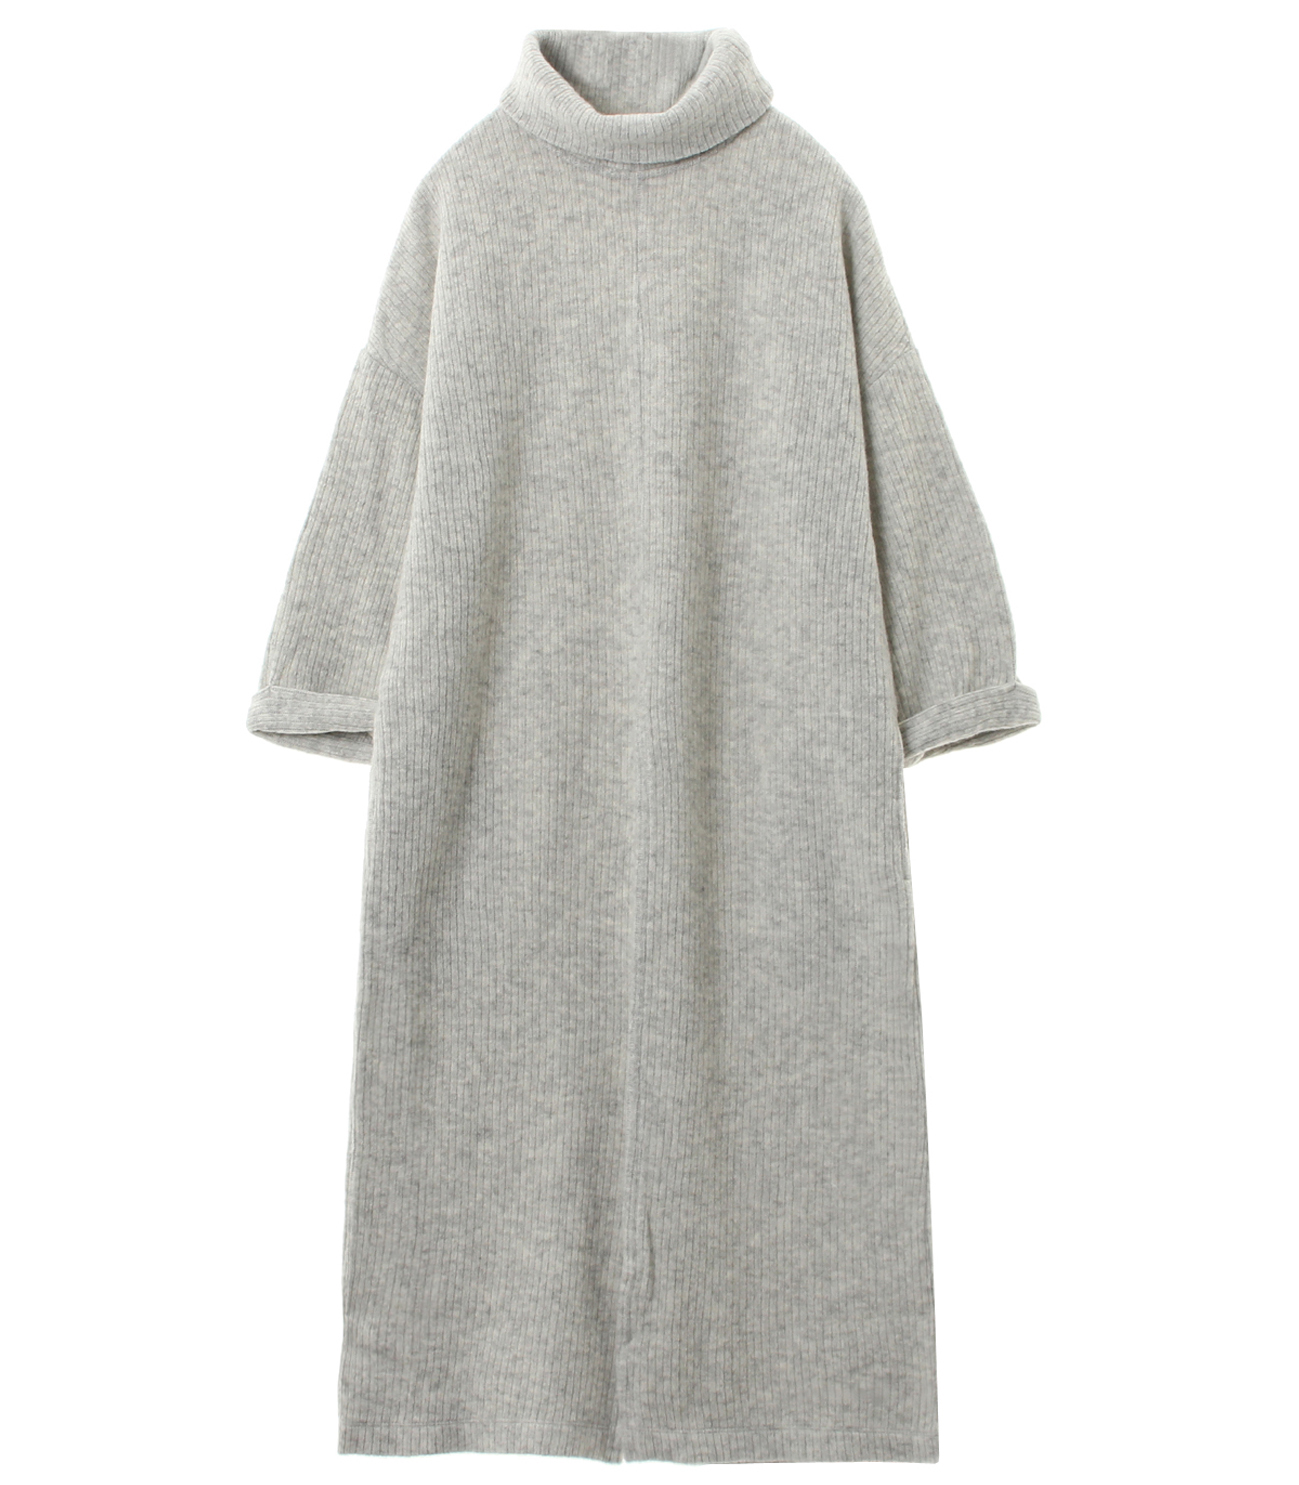 double faced rib sweater tunic t 詳細画像 hetaher grey 1